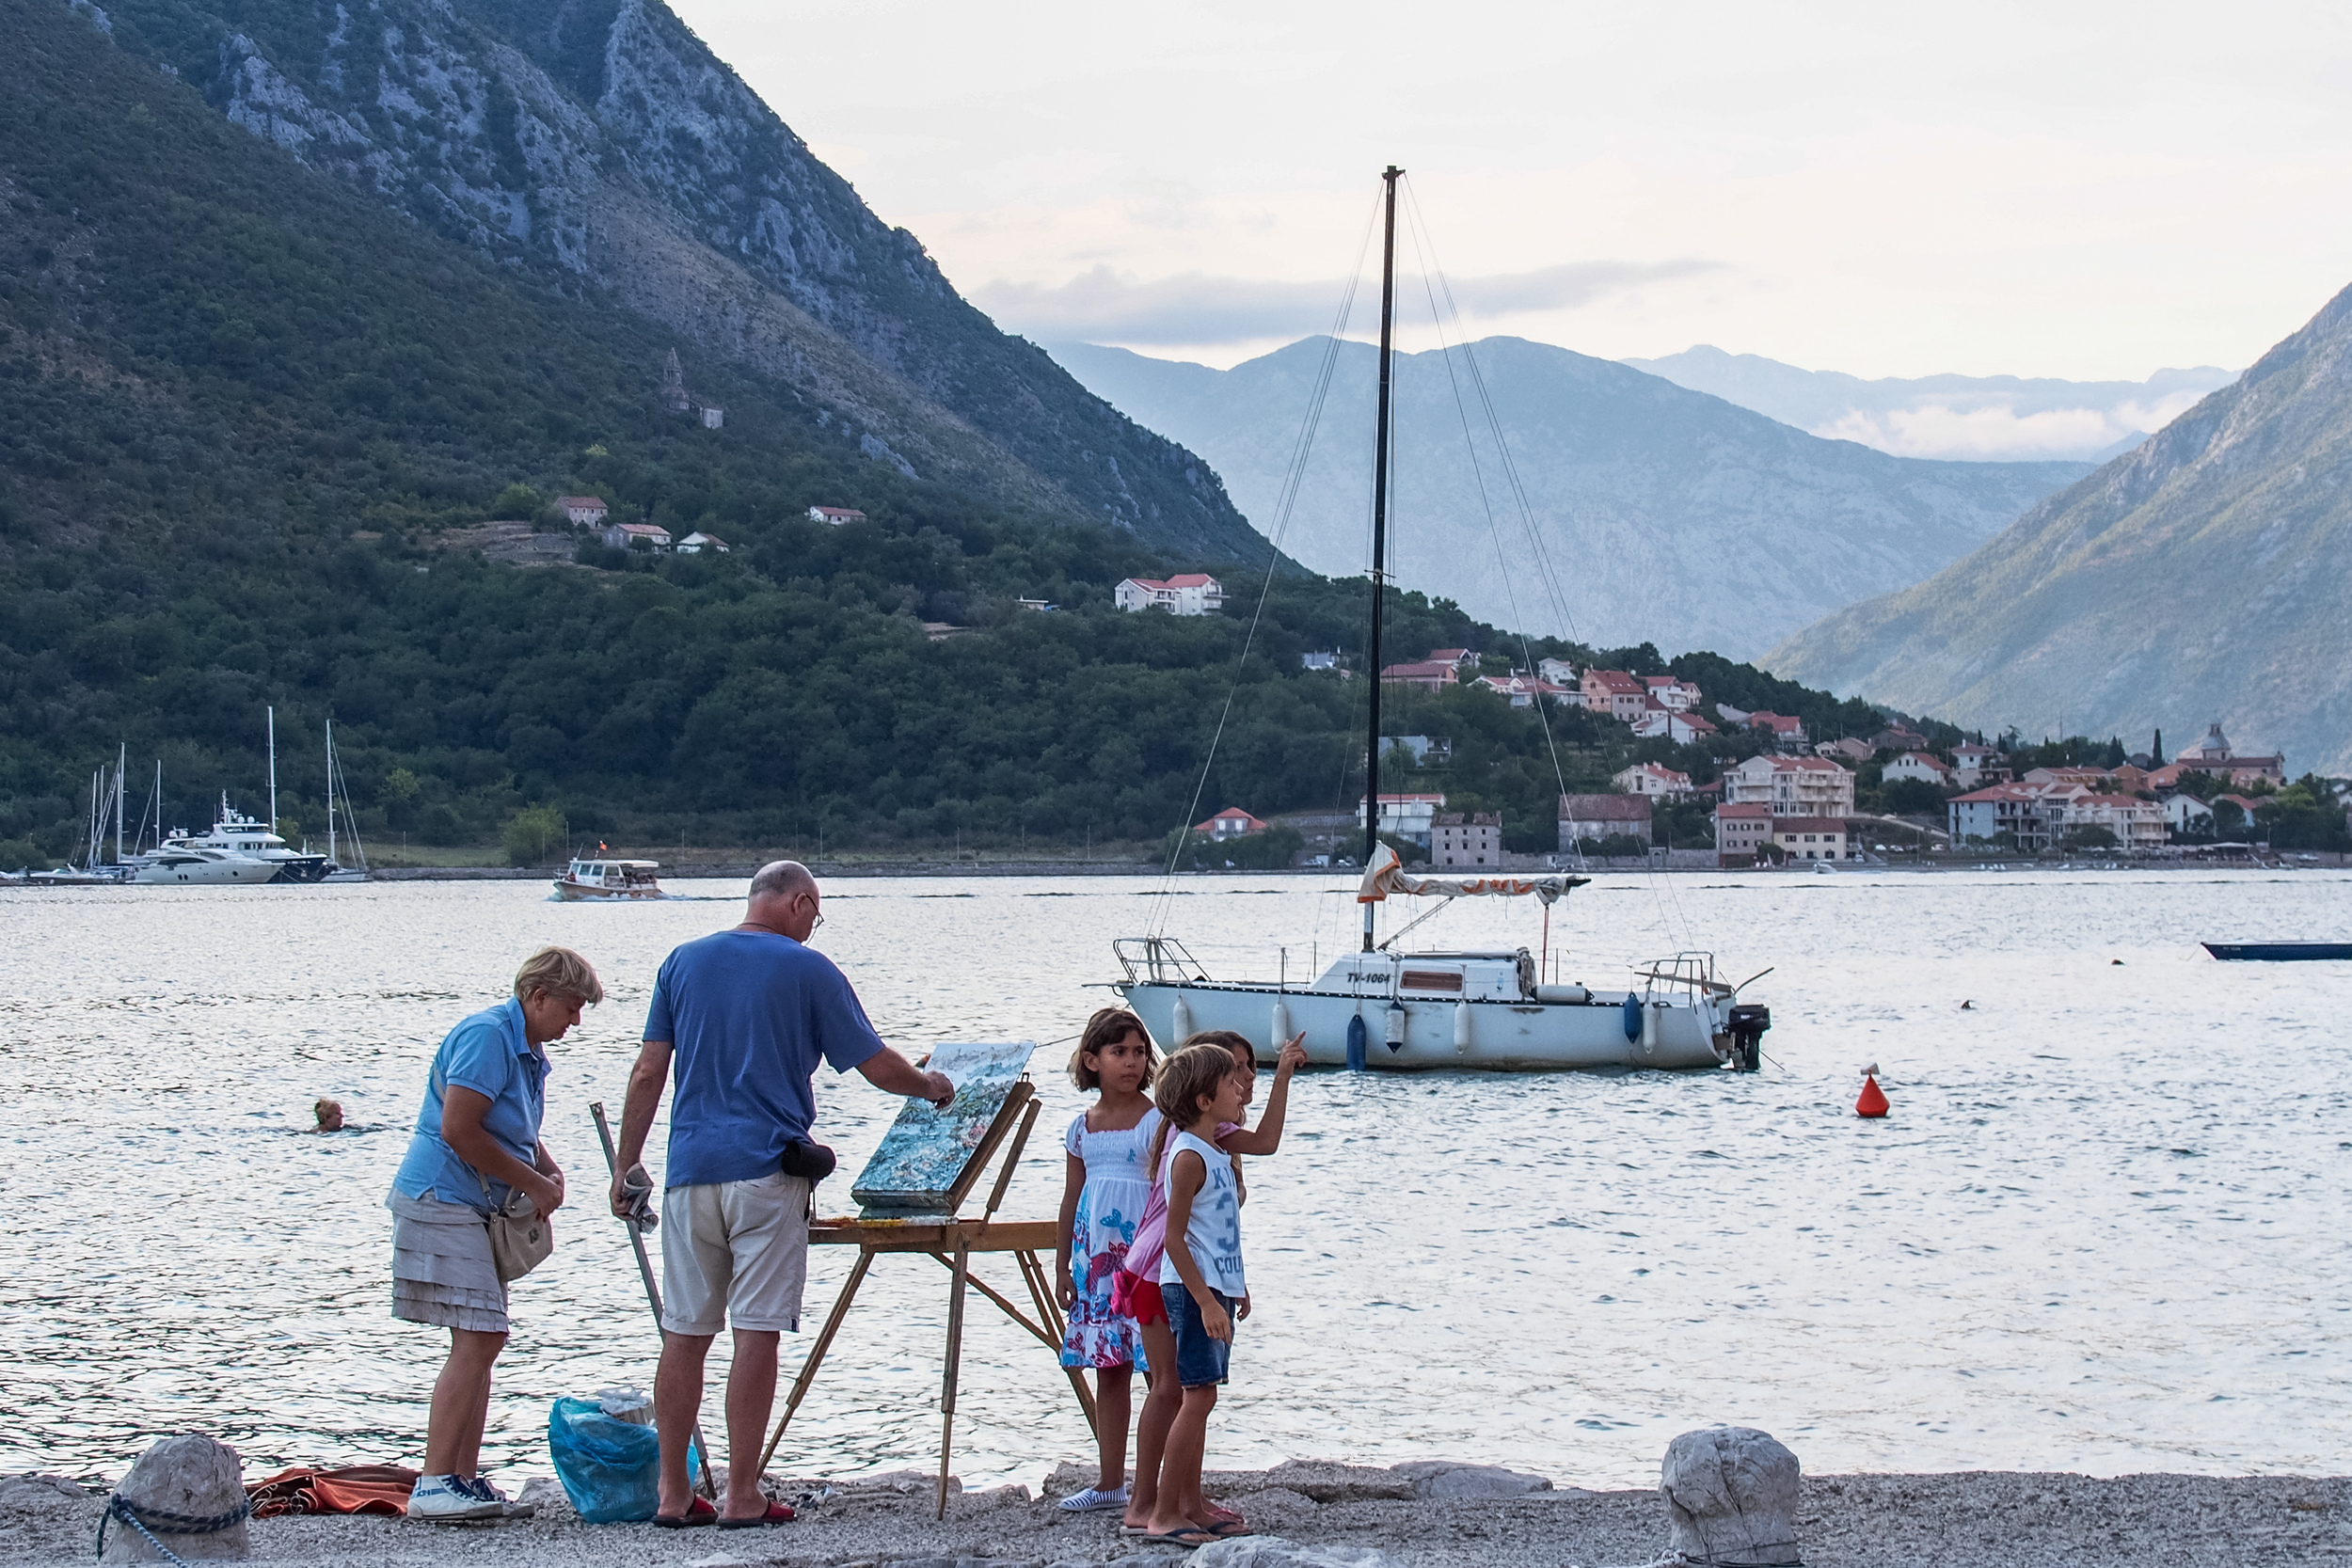 A family portrait in the Bay of Kotor